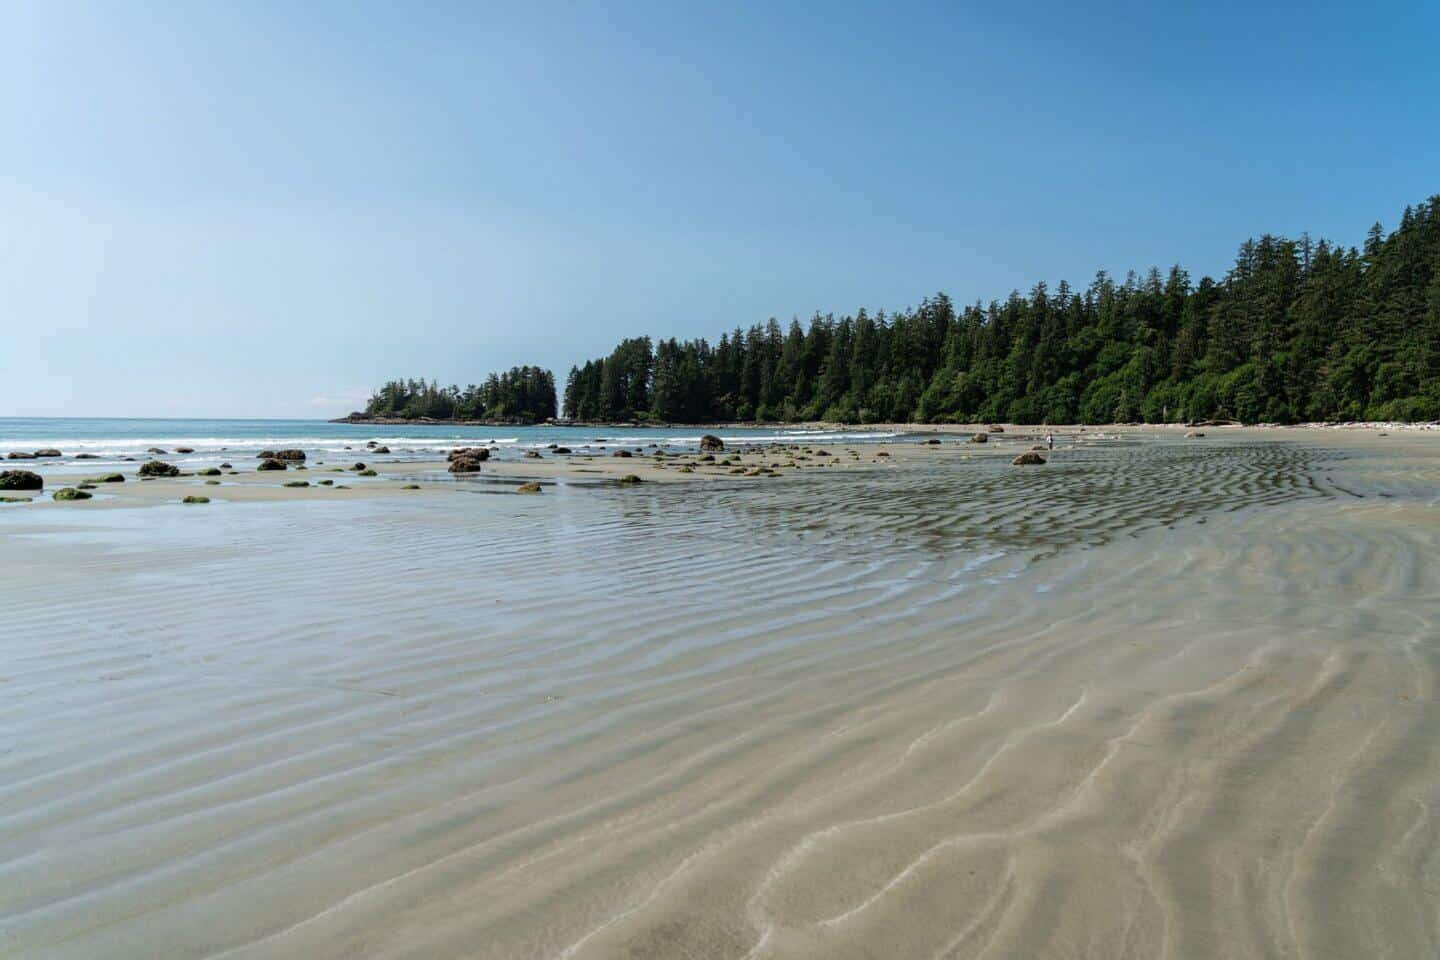 The beautiful, pristine beaches of Tofino begin with the secluded Wickaninnish Beach.